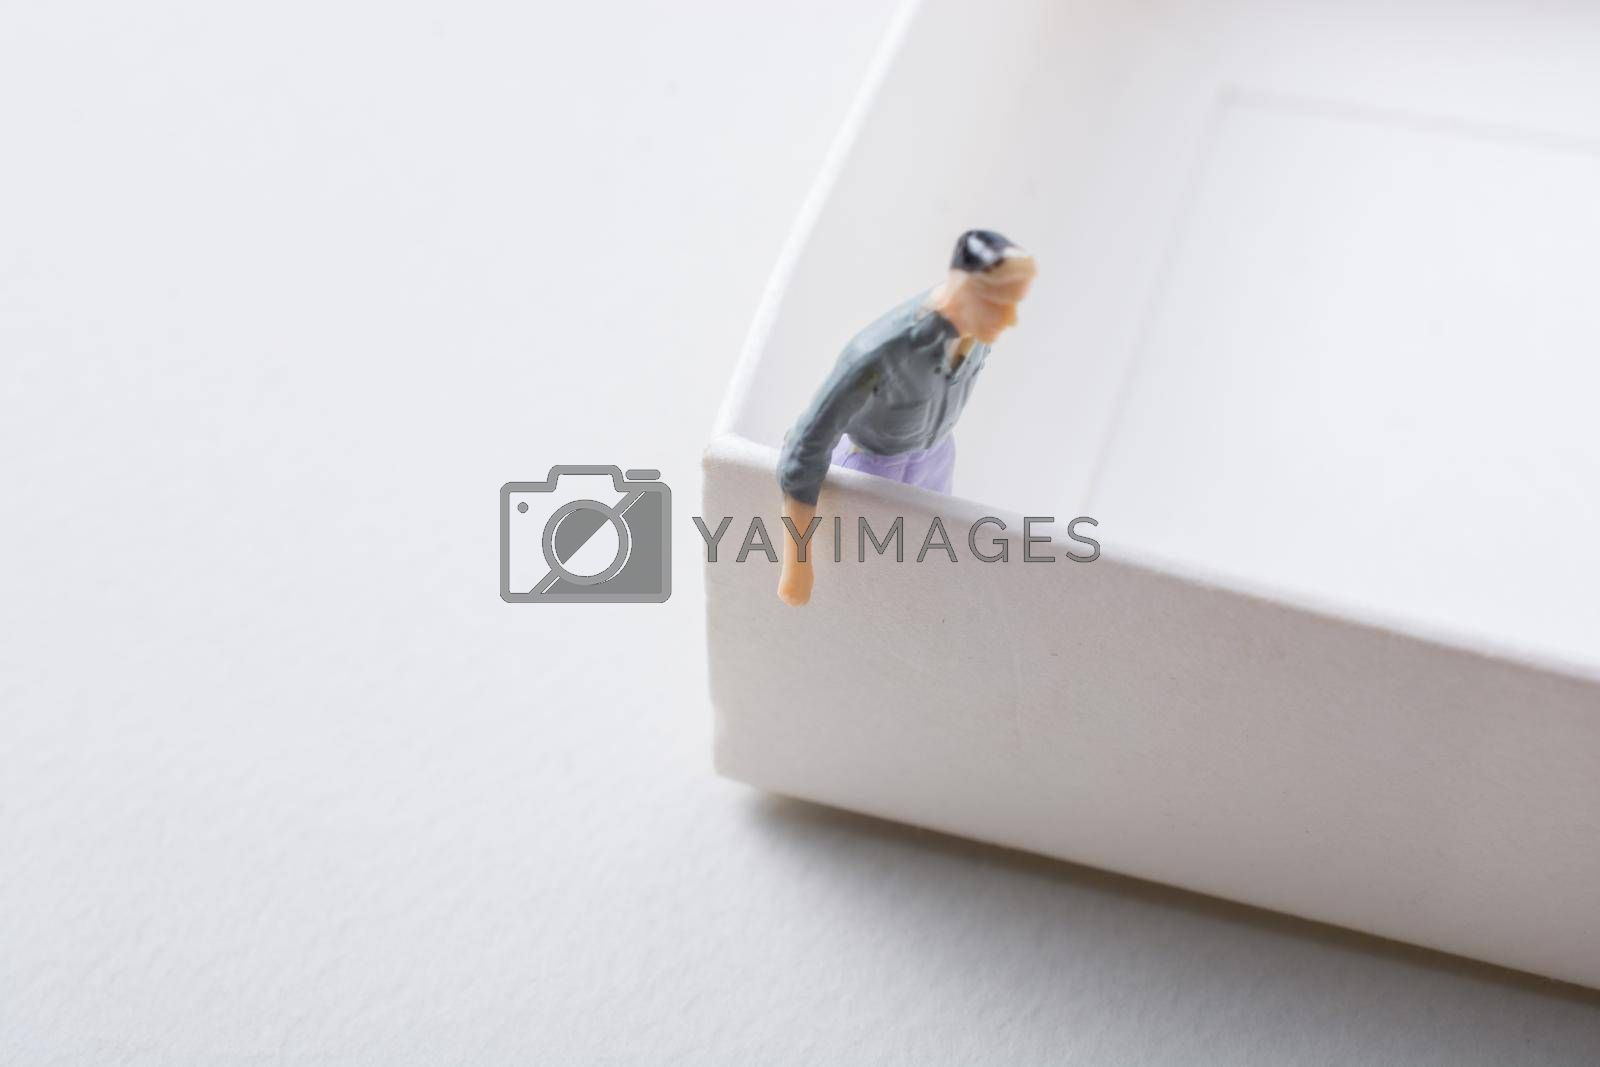 Tiny figurine of man miniature model in view